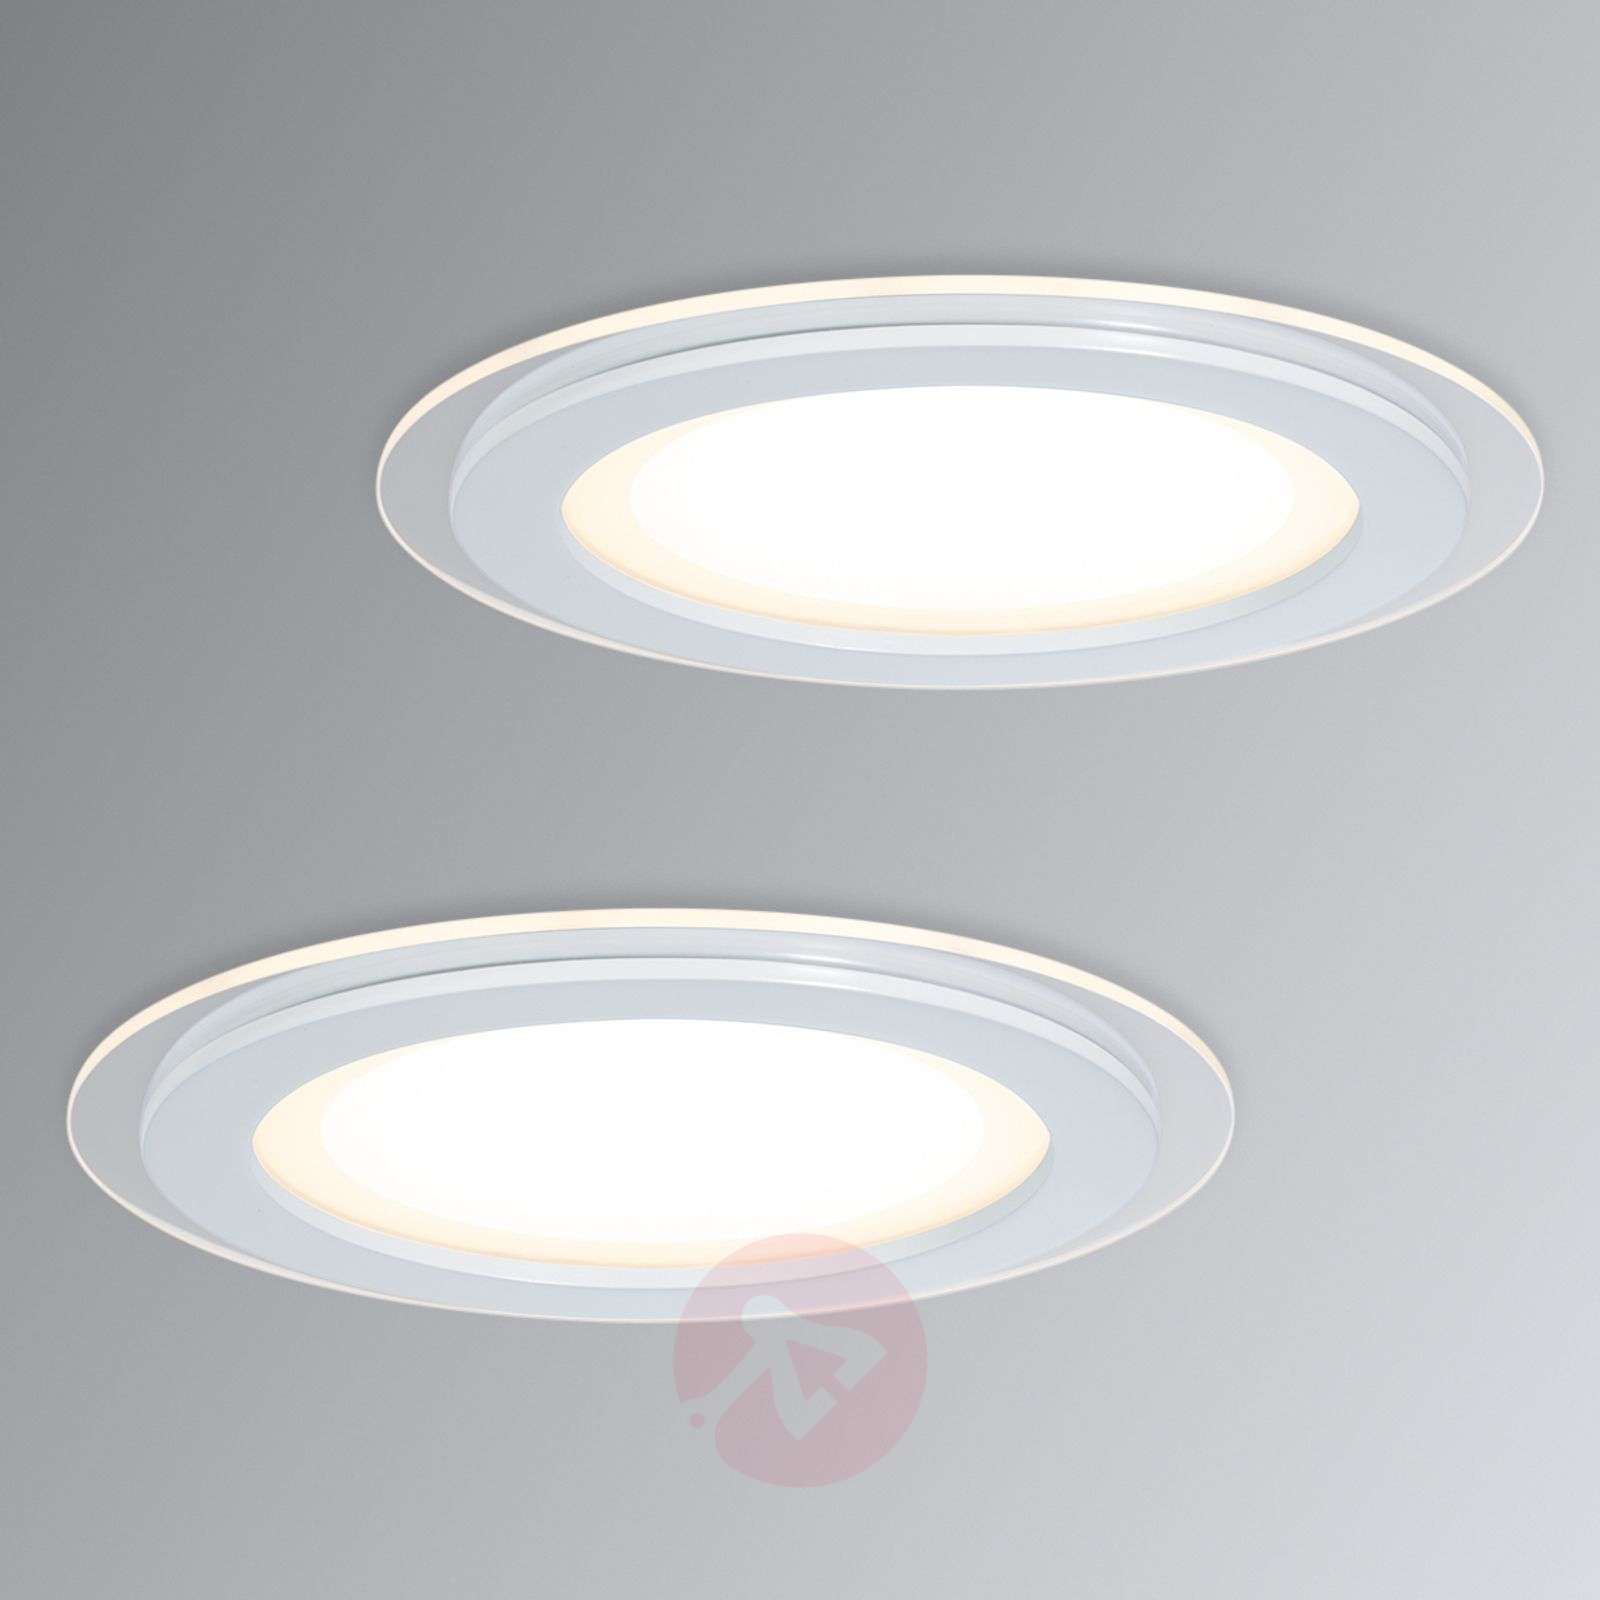 2 spots LED encastrables Premium Line DecoDot-7600696-01